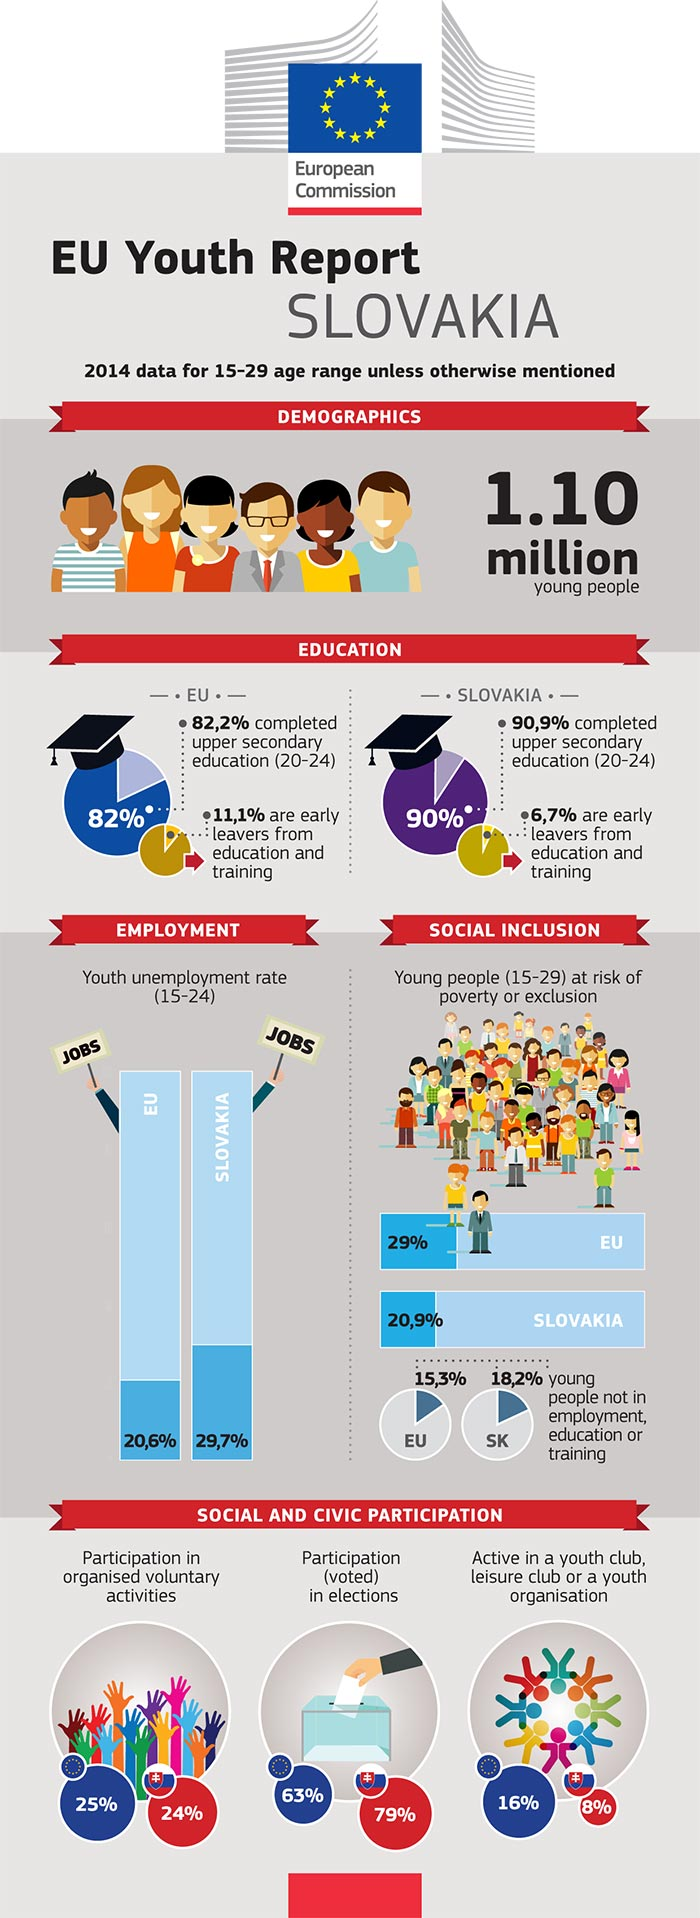 EU Youth Report infographic: Slovakia